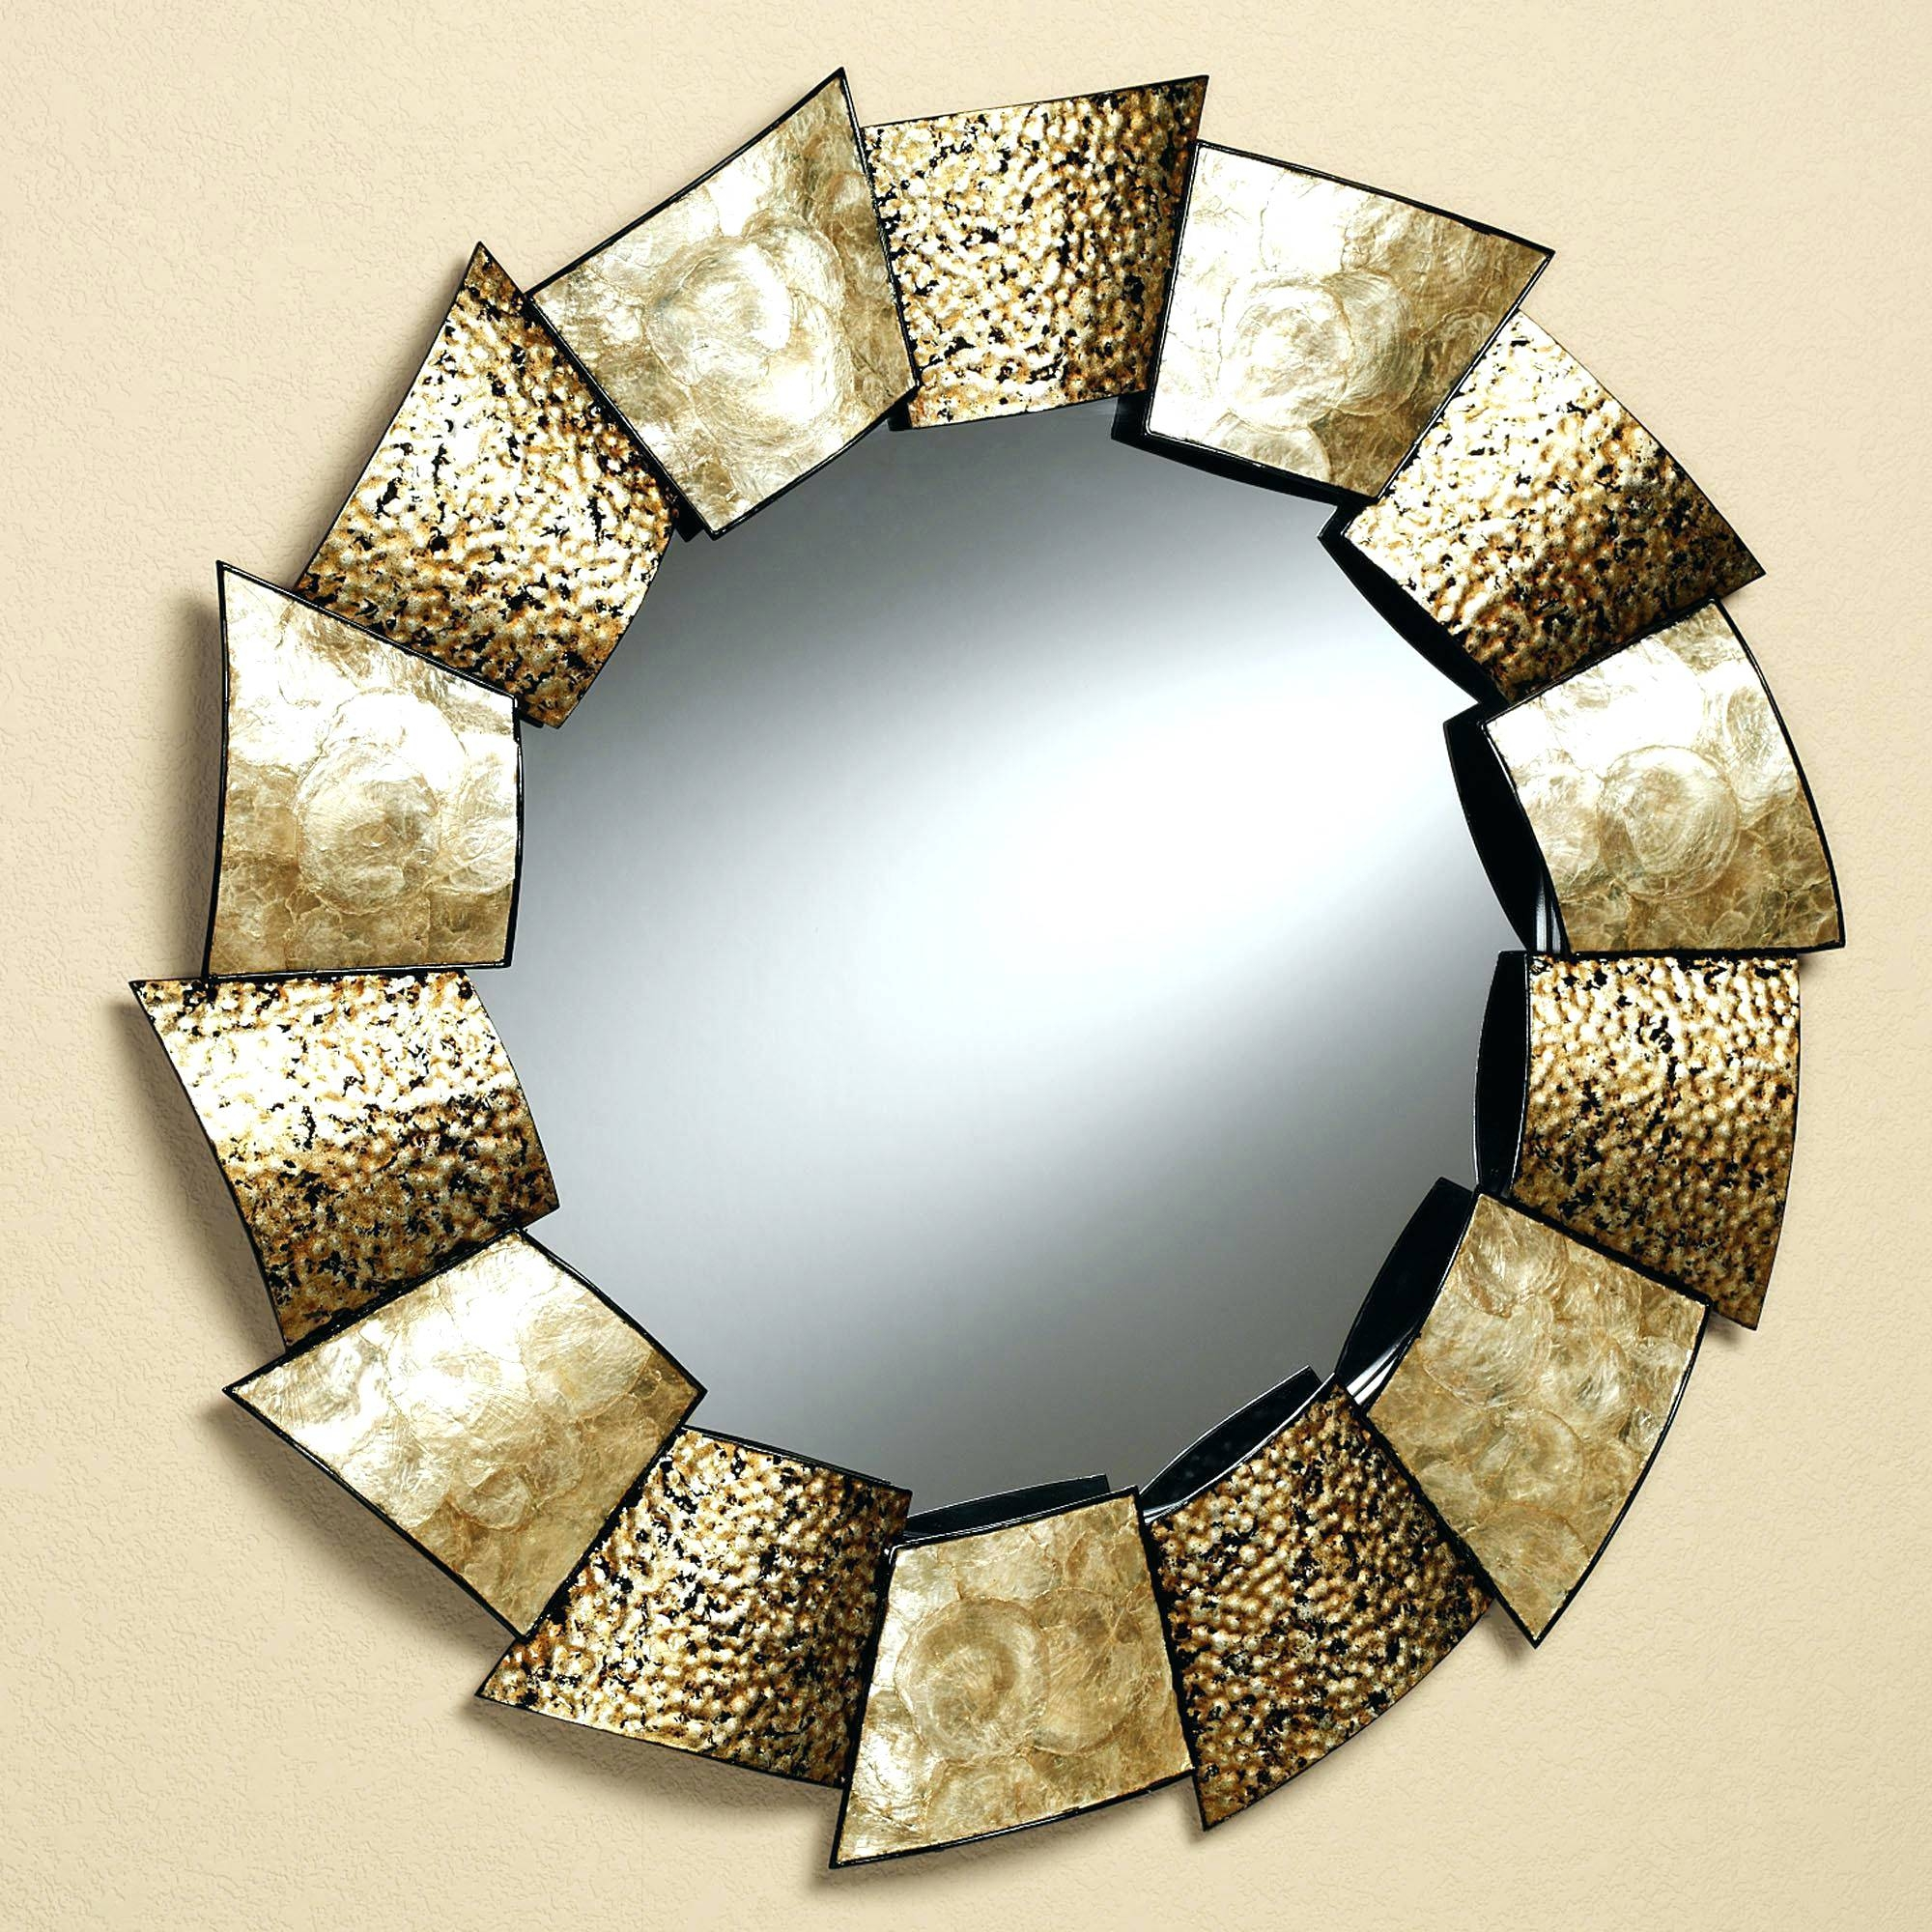 Wall Mirrors ~ Oval Shaped Wall Mirrors Unique Wall Mirror Decor for Oval Shaped Wall Mirrors (Image 14 of 15)